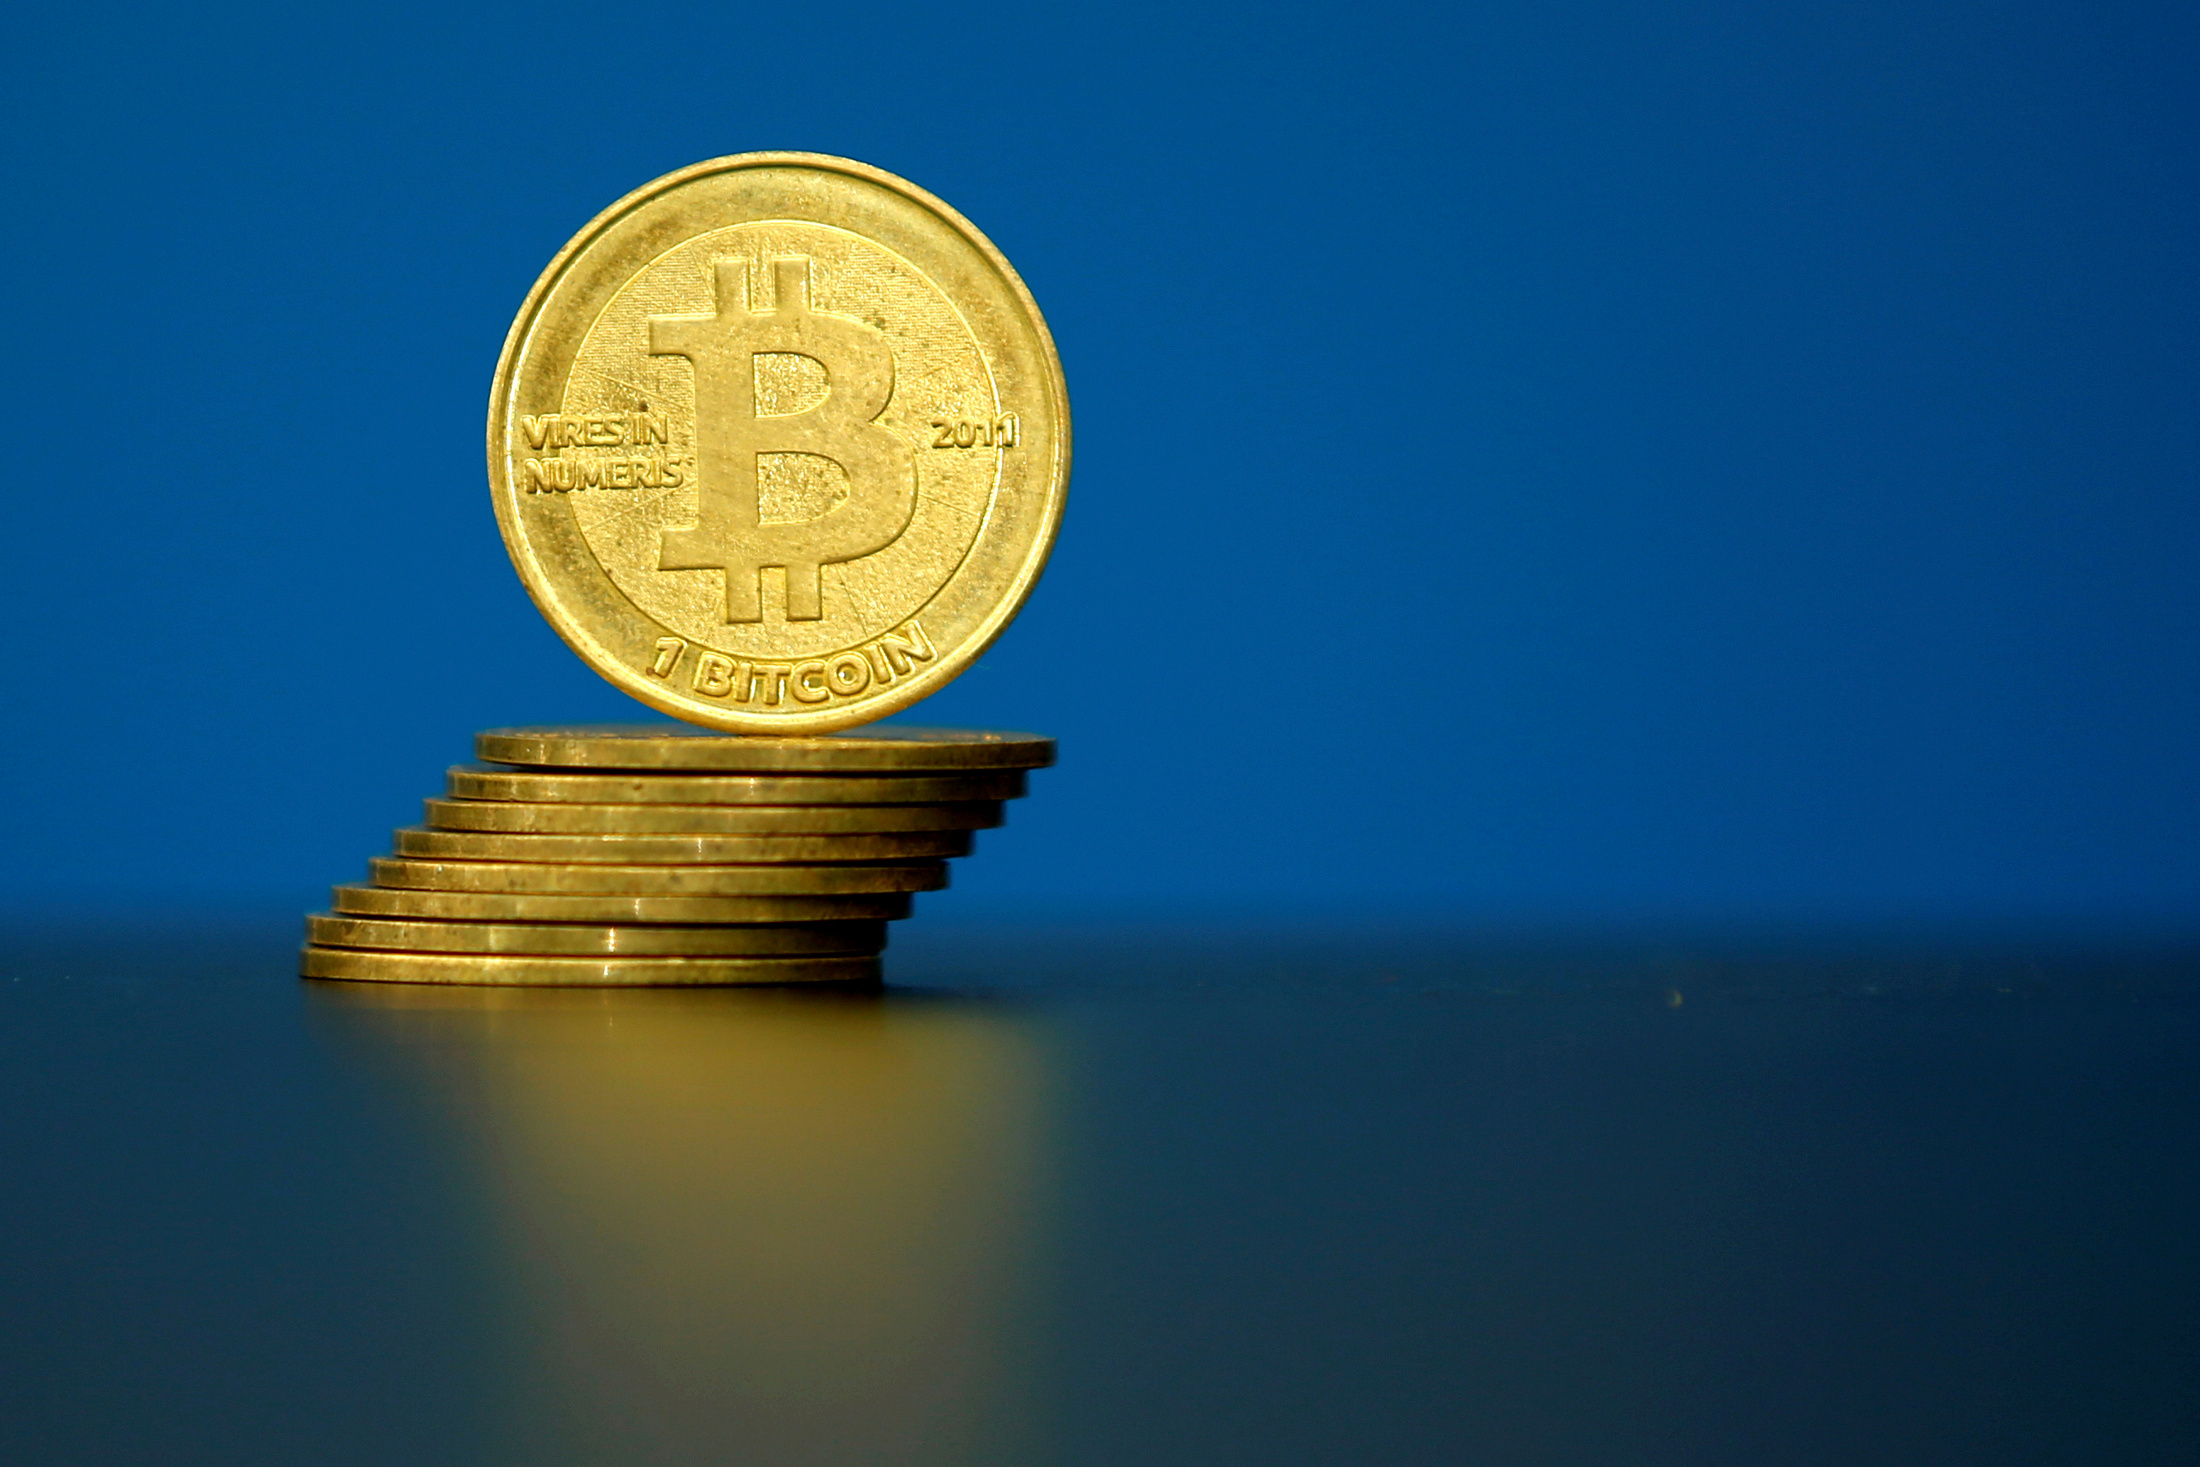 FILE PHOTO: Bitcoin (virtual currency) coins are seen in an illustration picture taken at La Maison du Bitcoin in Paris, France, May 27, 2015.